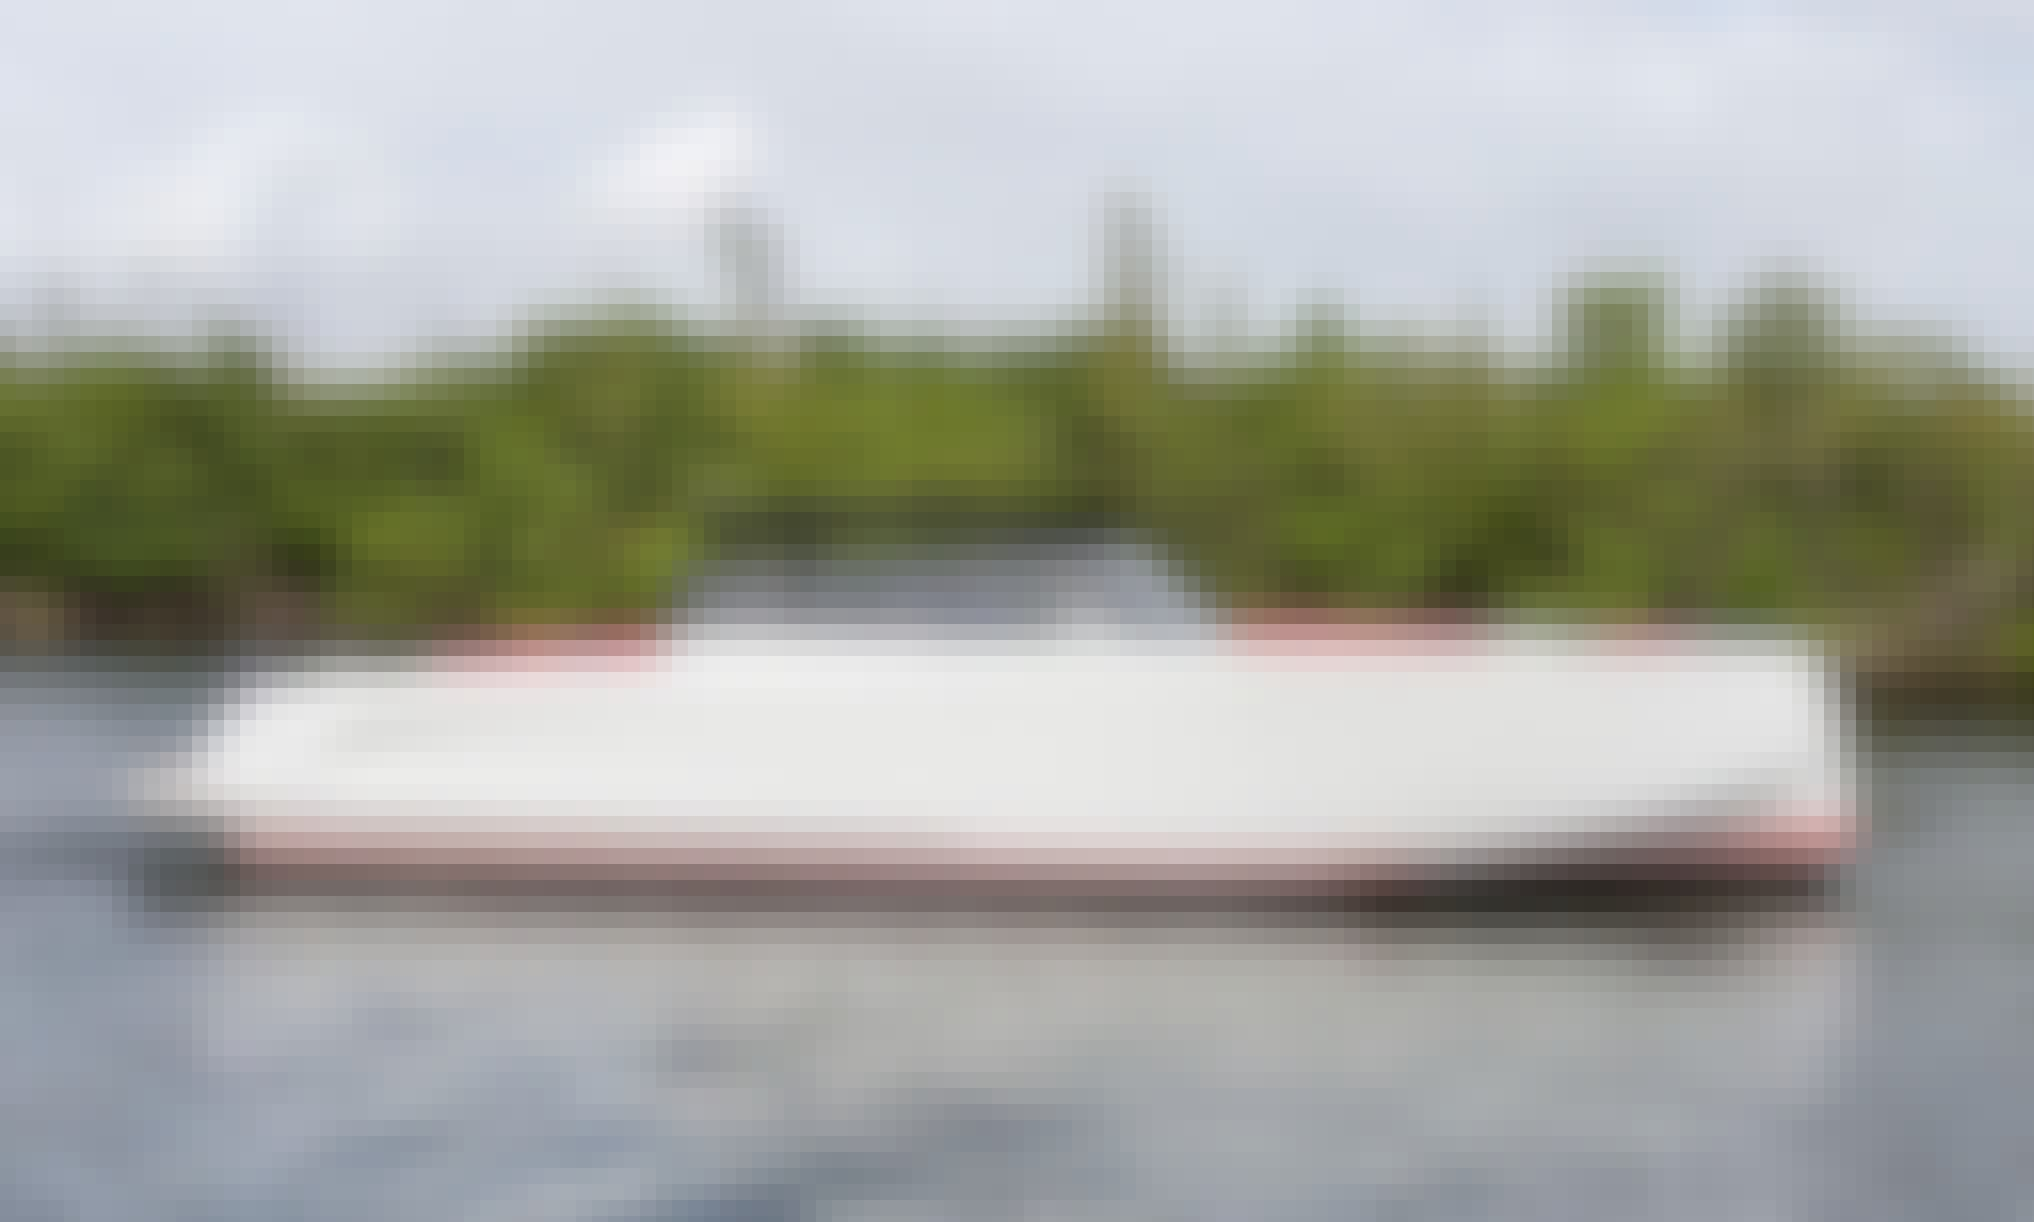 Sexiest Day Boat Afloat - Charter the 48' Vanquish Motor Yacht in Fort Lauderdale, Florida